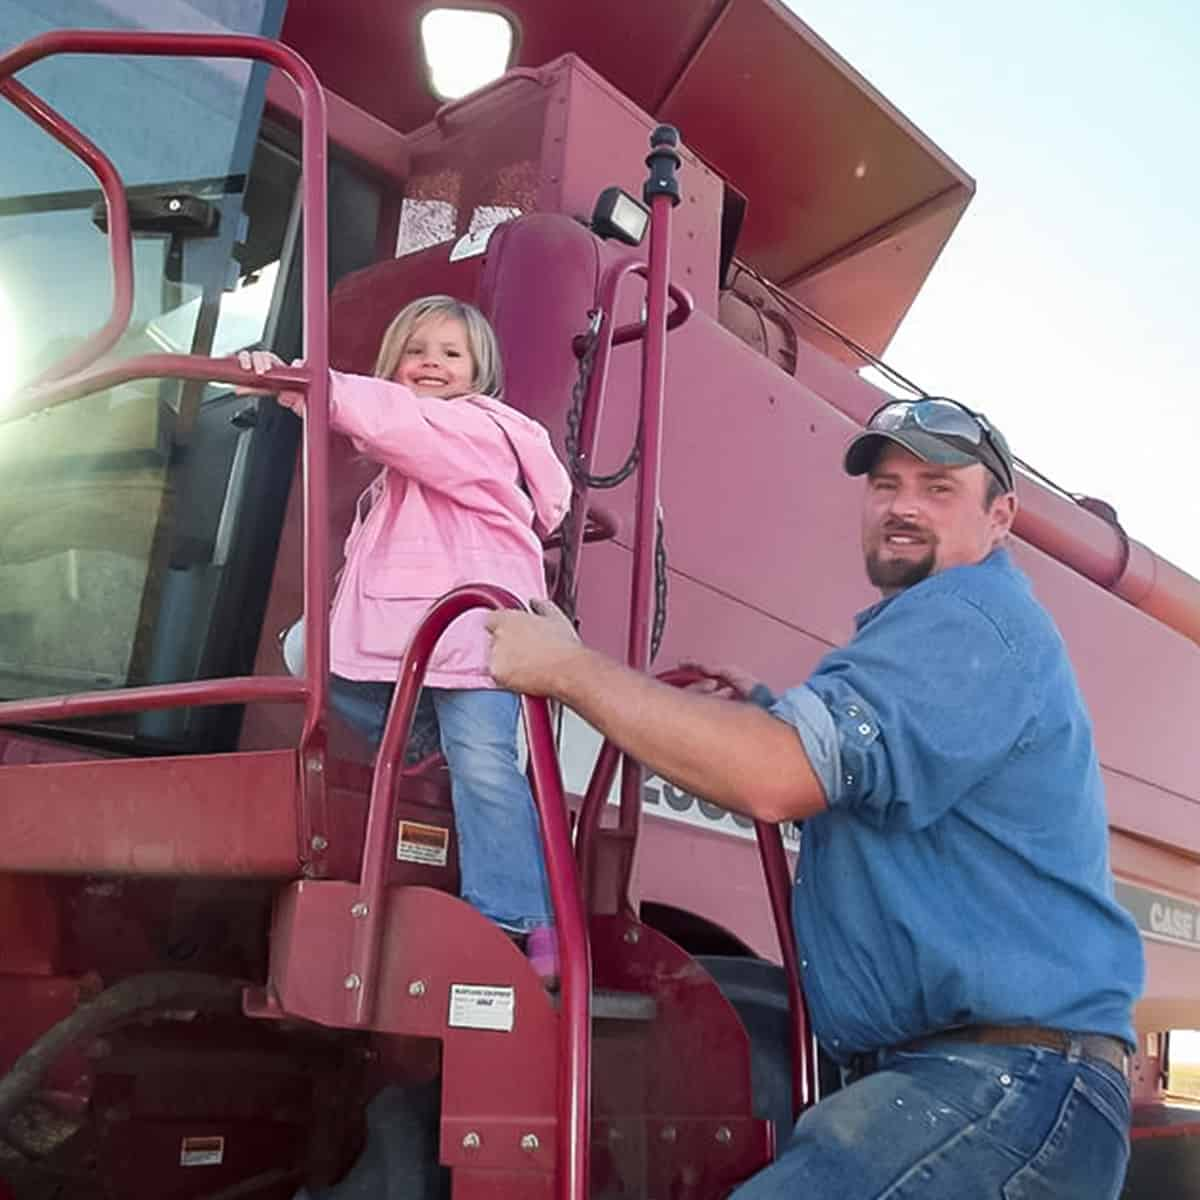 father-and-daughter-on-farm-equipment-in-rural-america